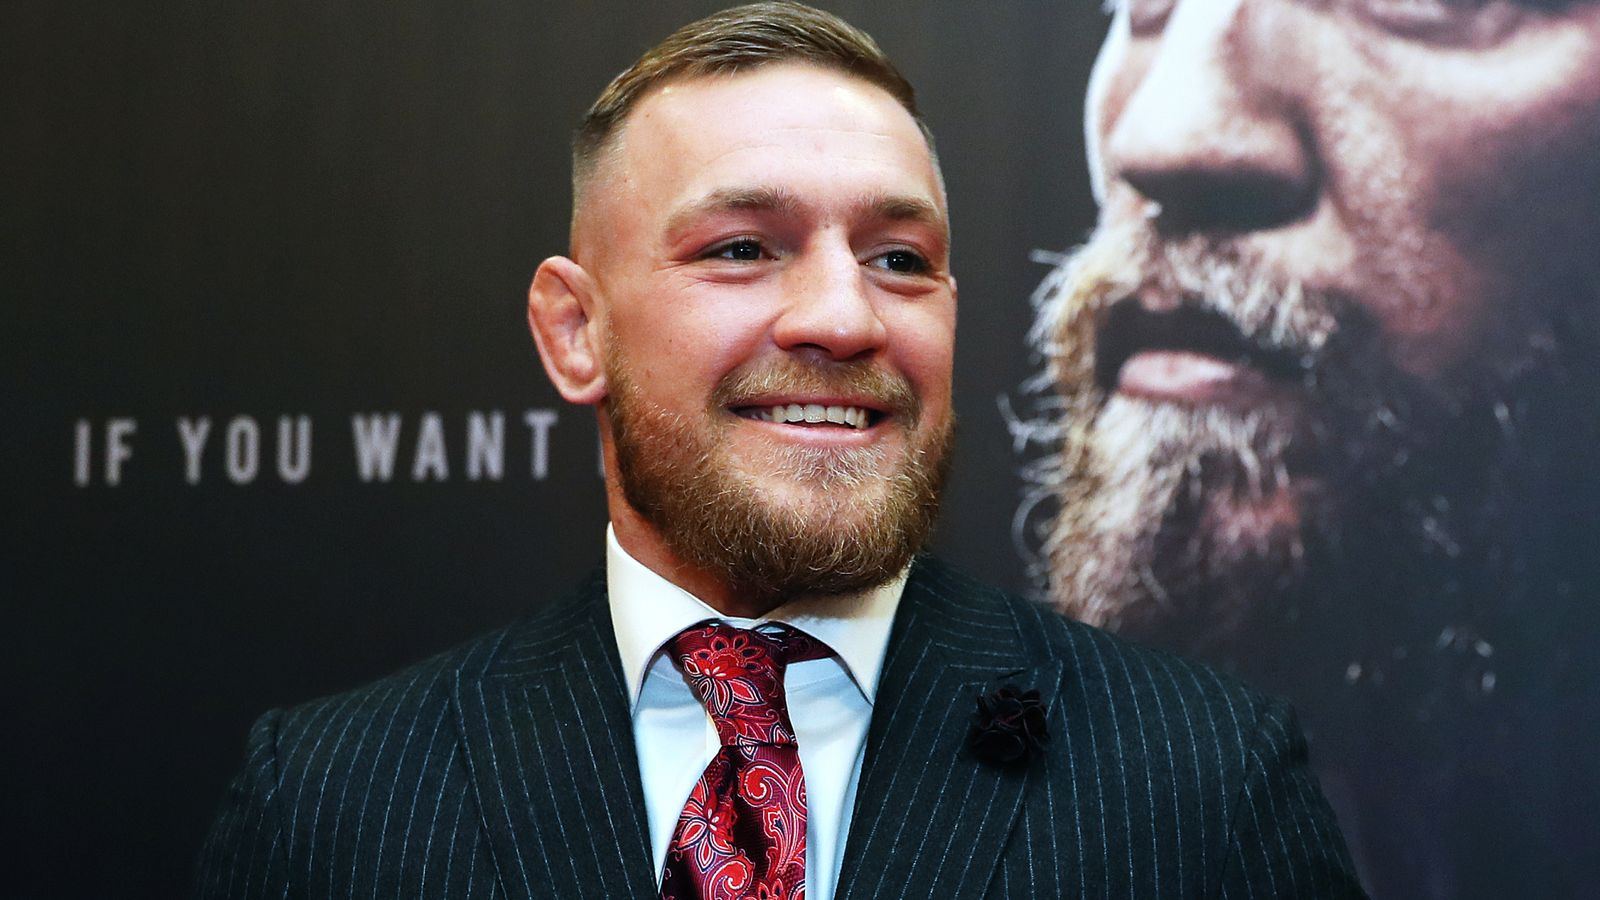 Conor McGregor highest-paid athlete ahead of Lionel Messi and Cristiano Ronaldo, according to Forbes